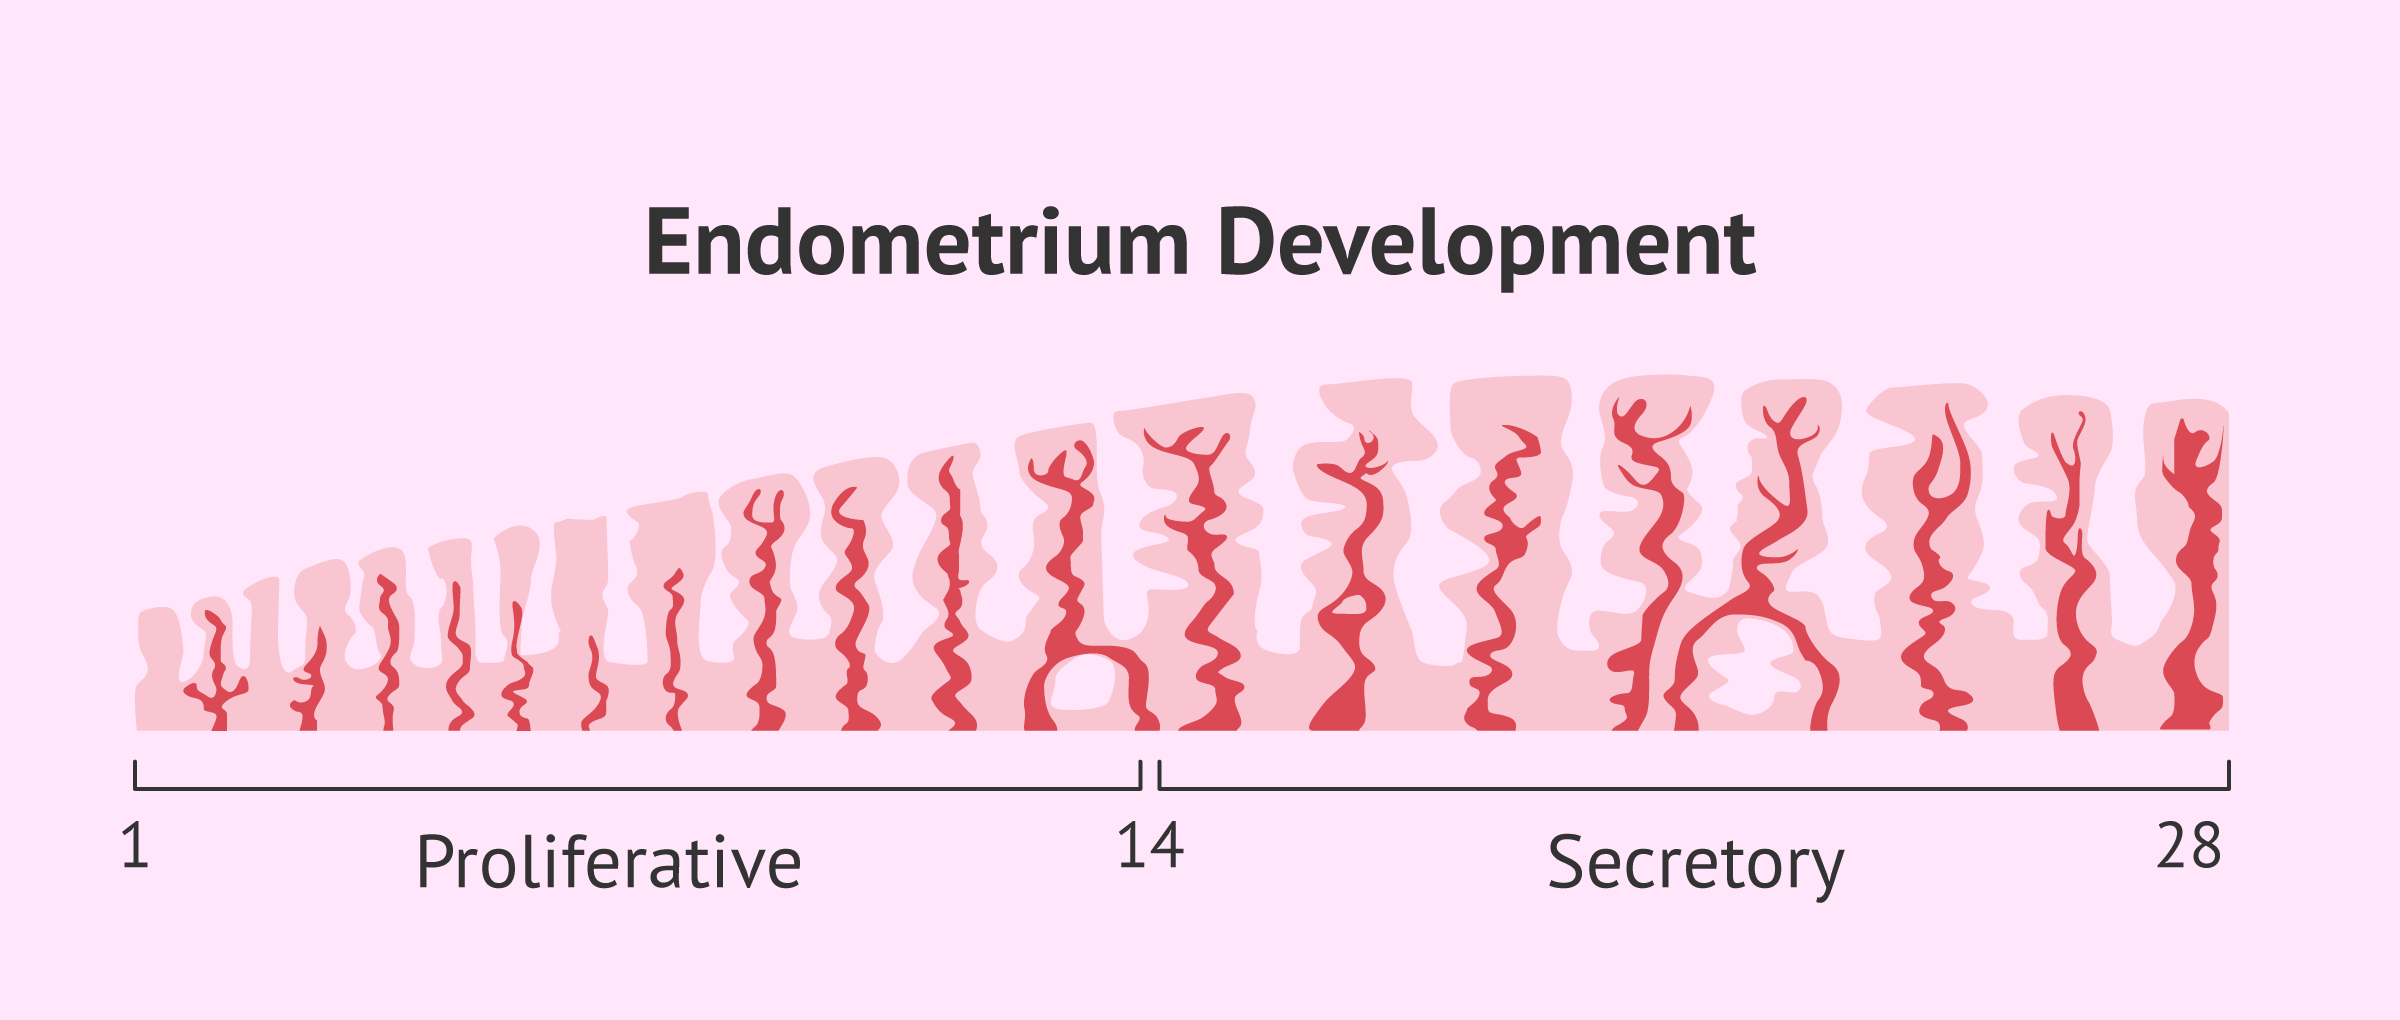 Endometrium Preparation for Embryo Transfer: How does it work?